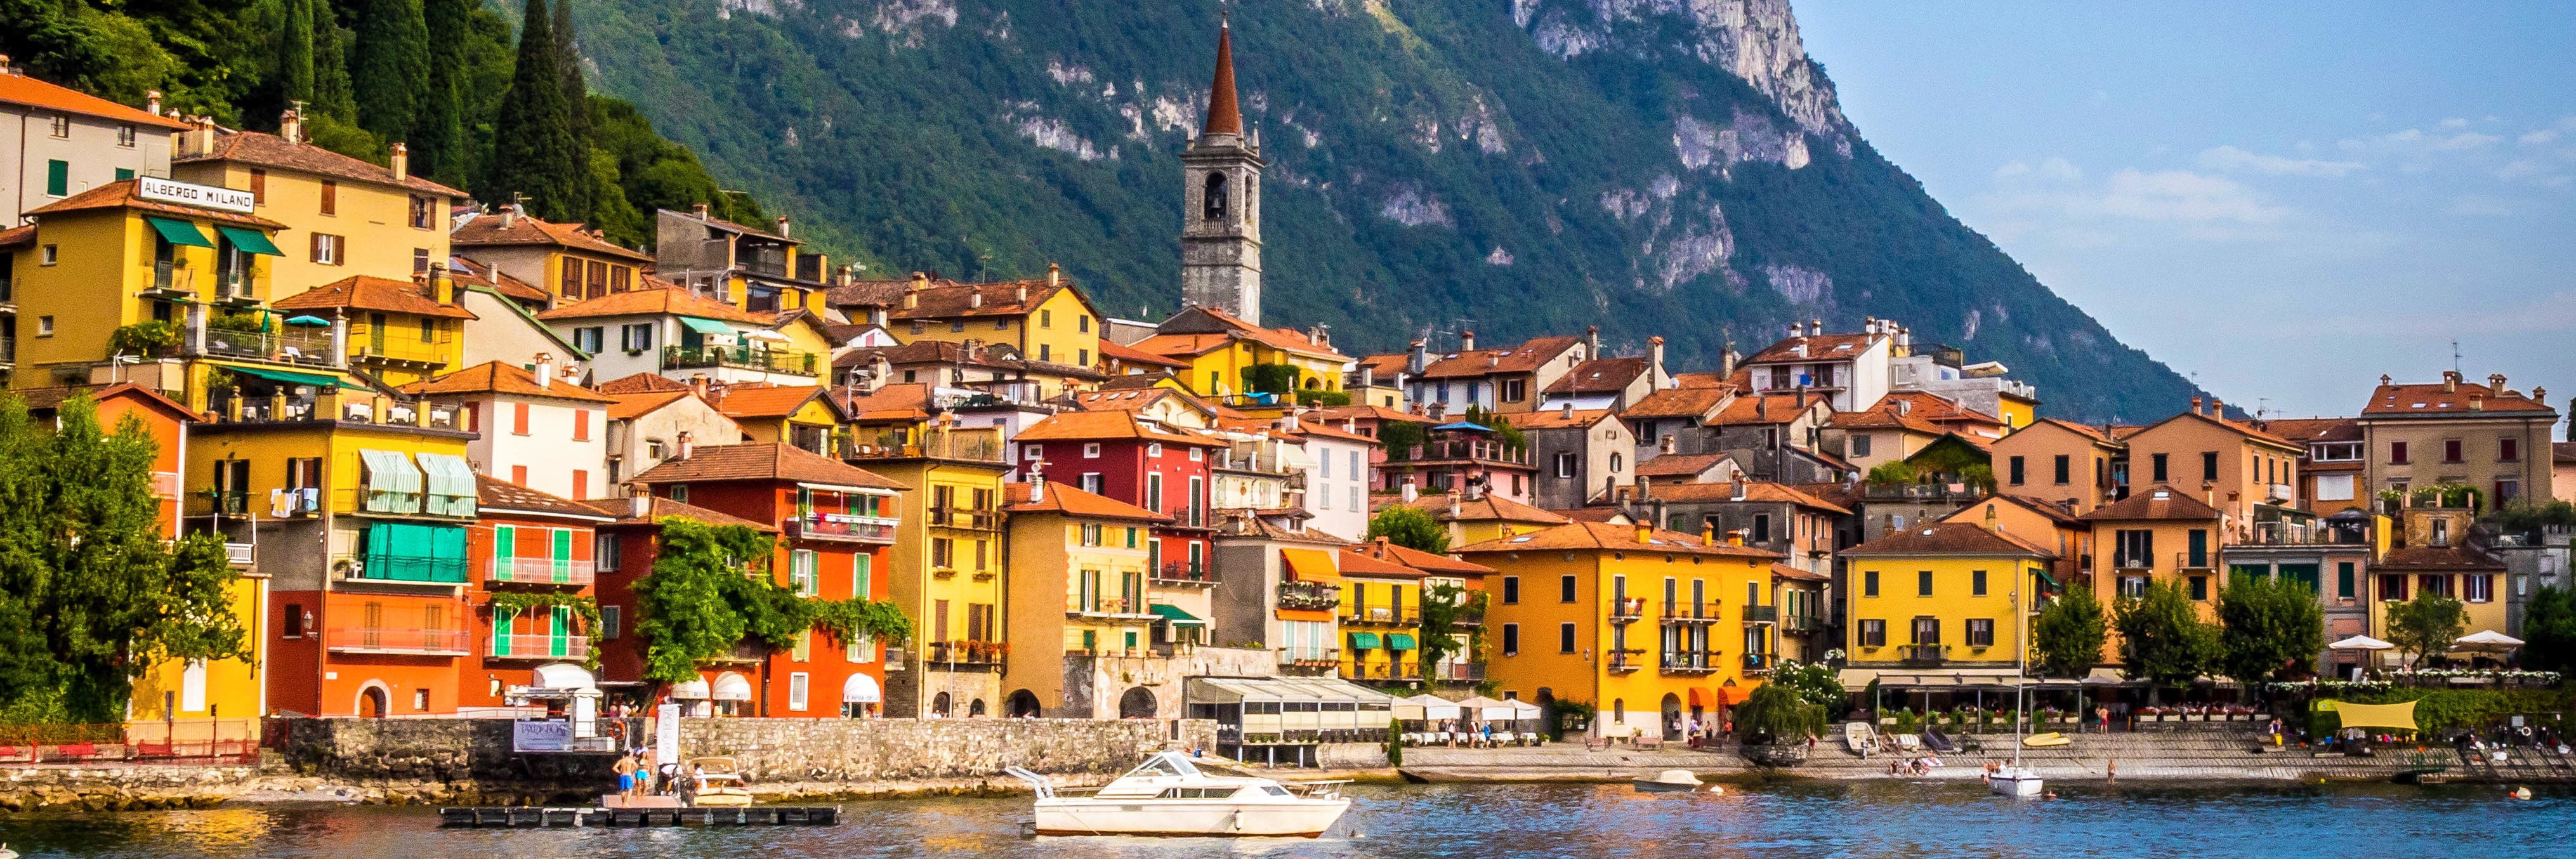 Europe Cruise Vacation Packages